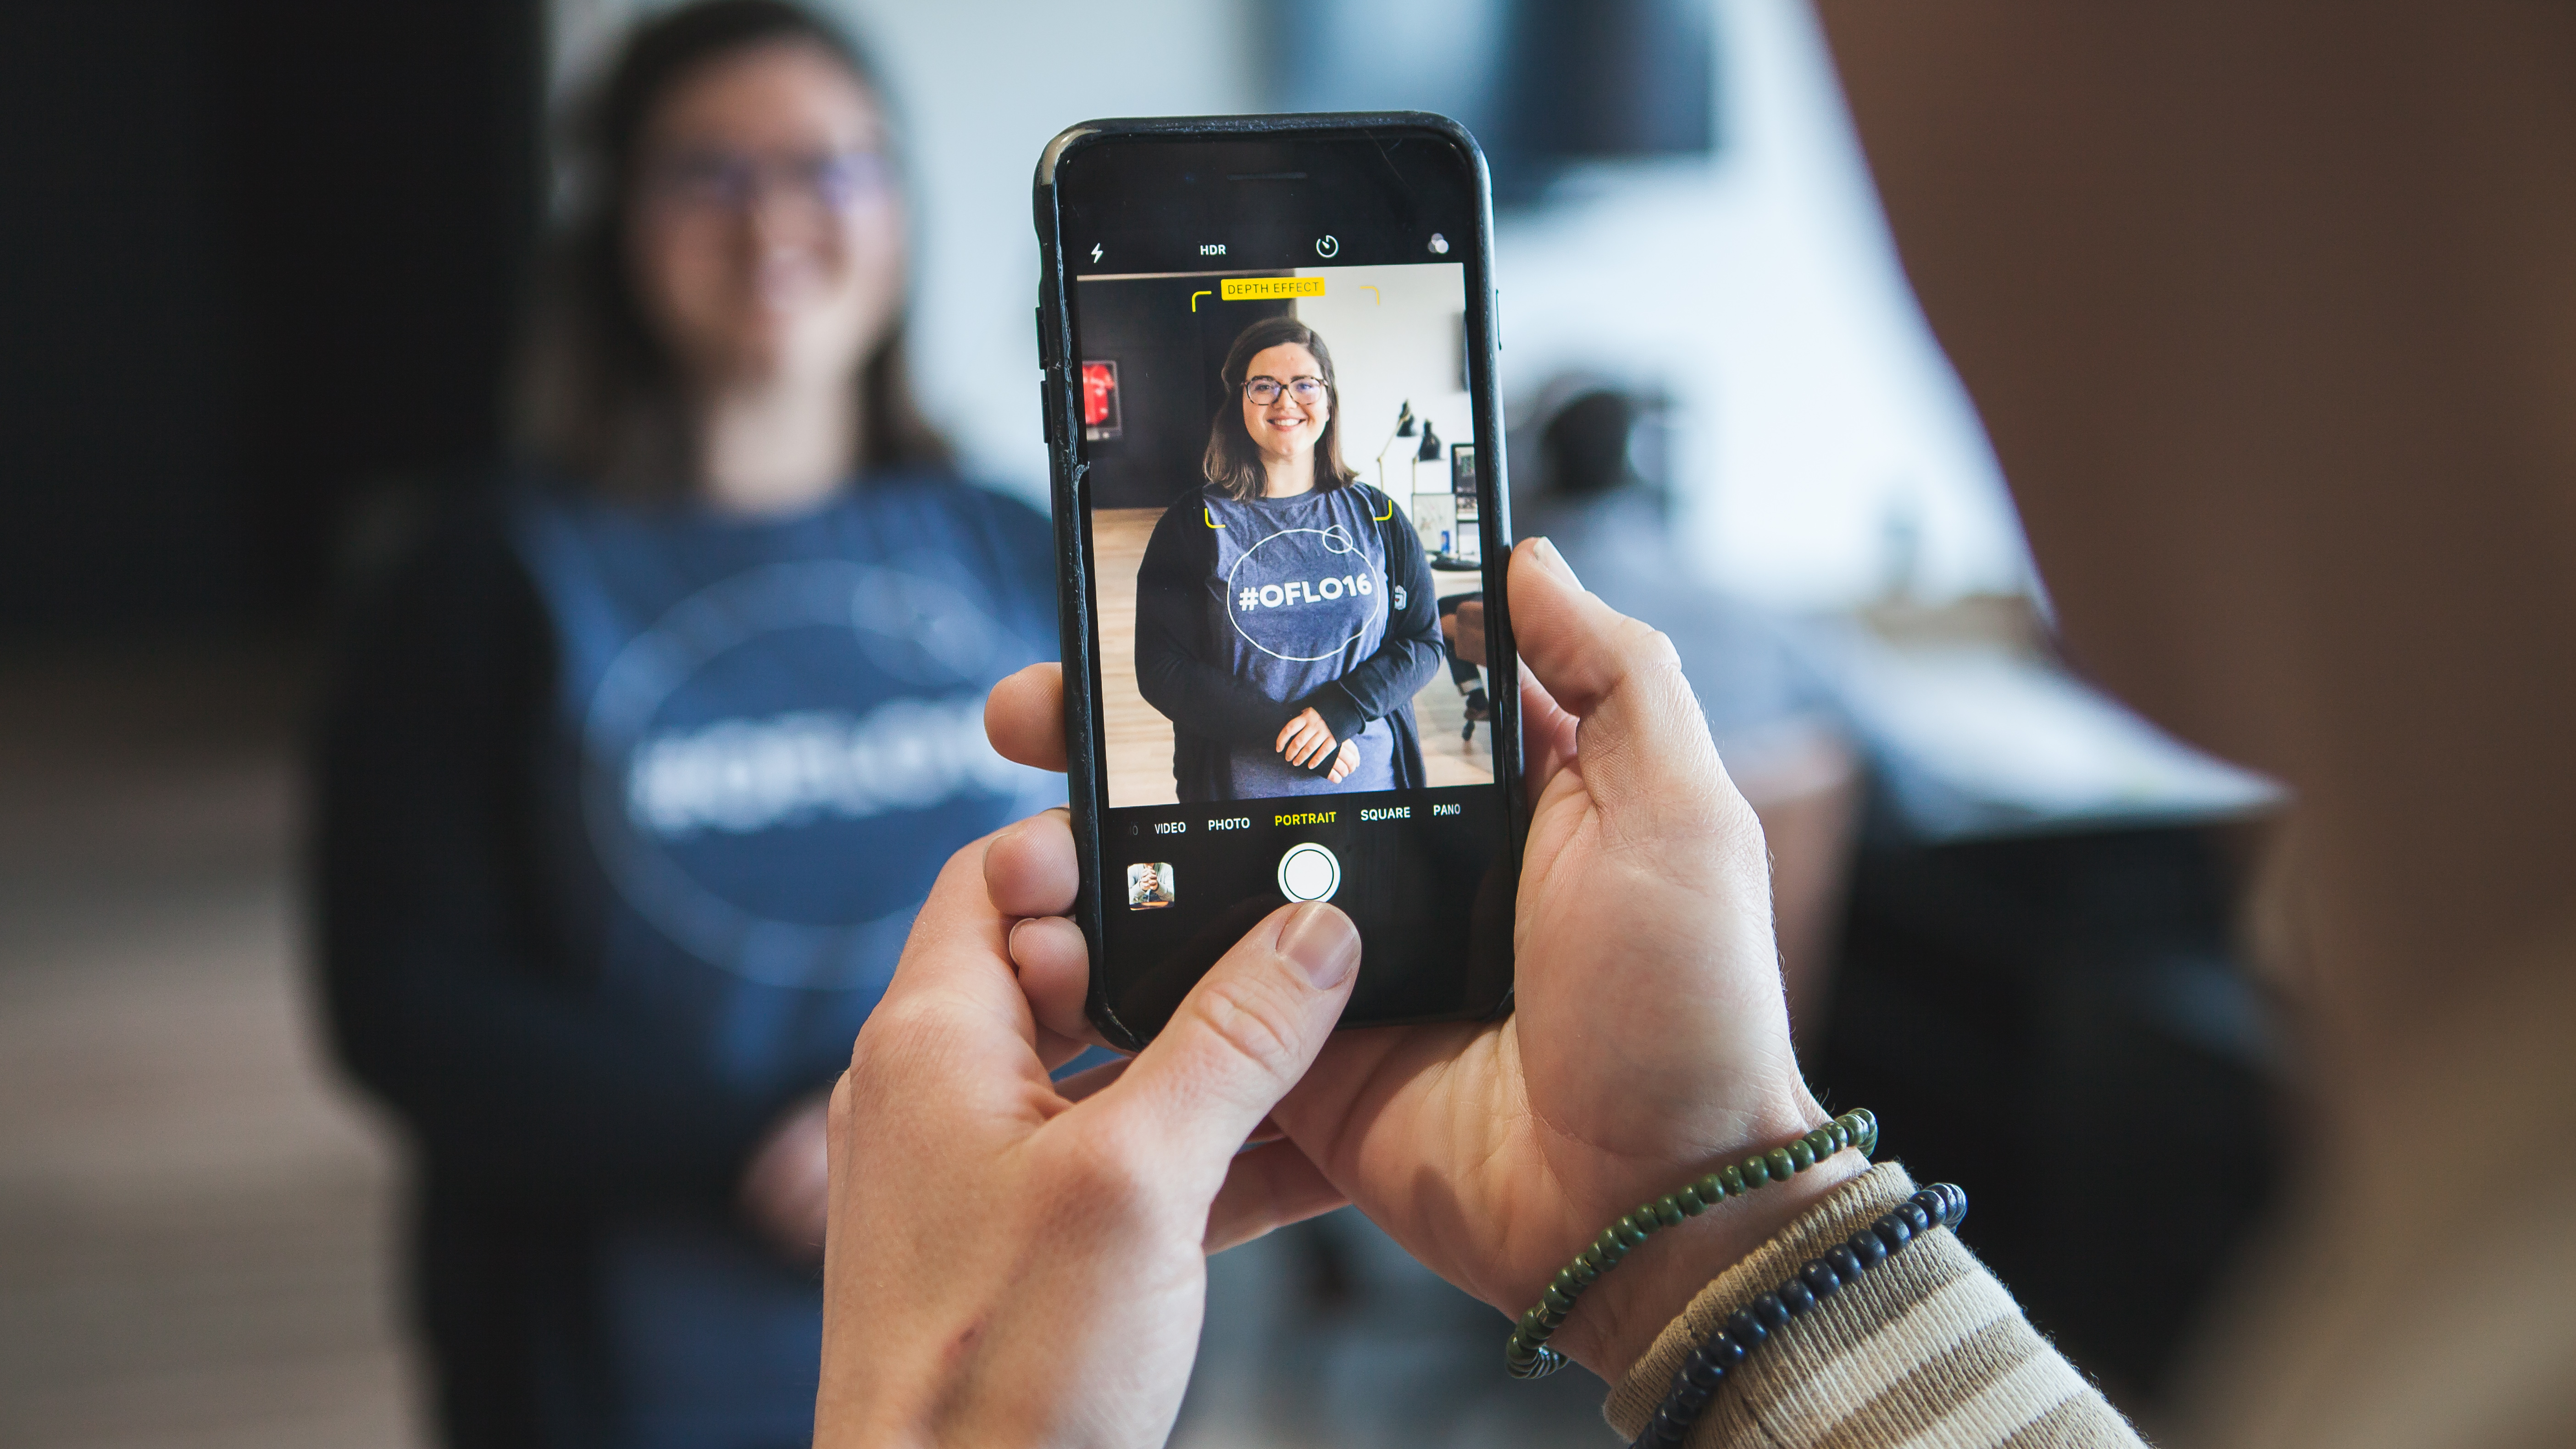 Newer mobile devices are equipped with a 'Portrait mode' that allows you to capture photos with a shallow depth of field directly with your phone